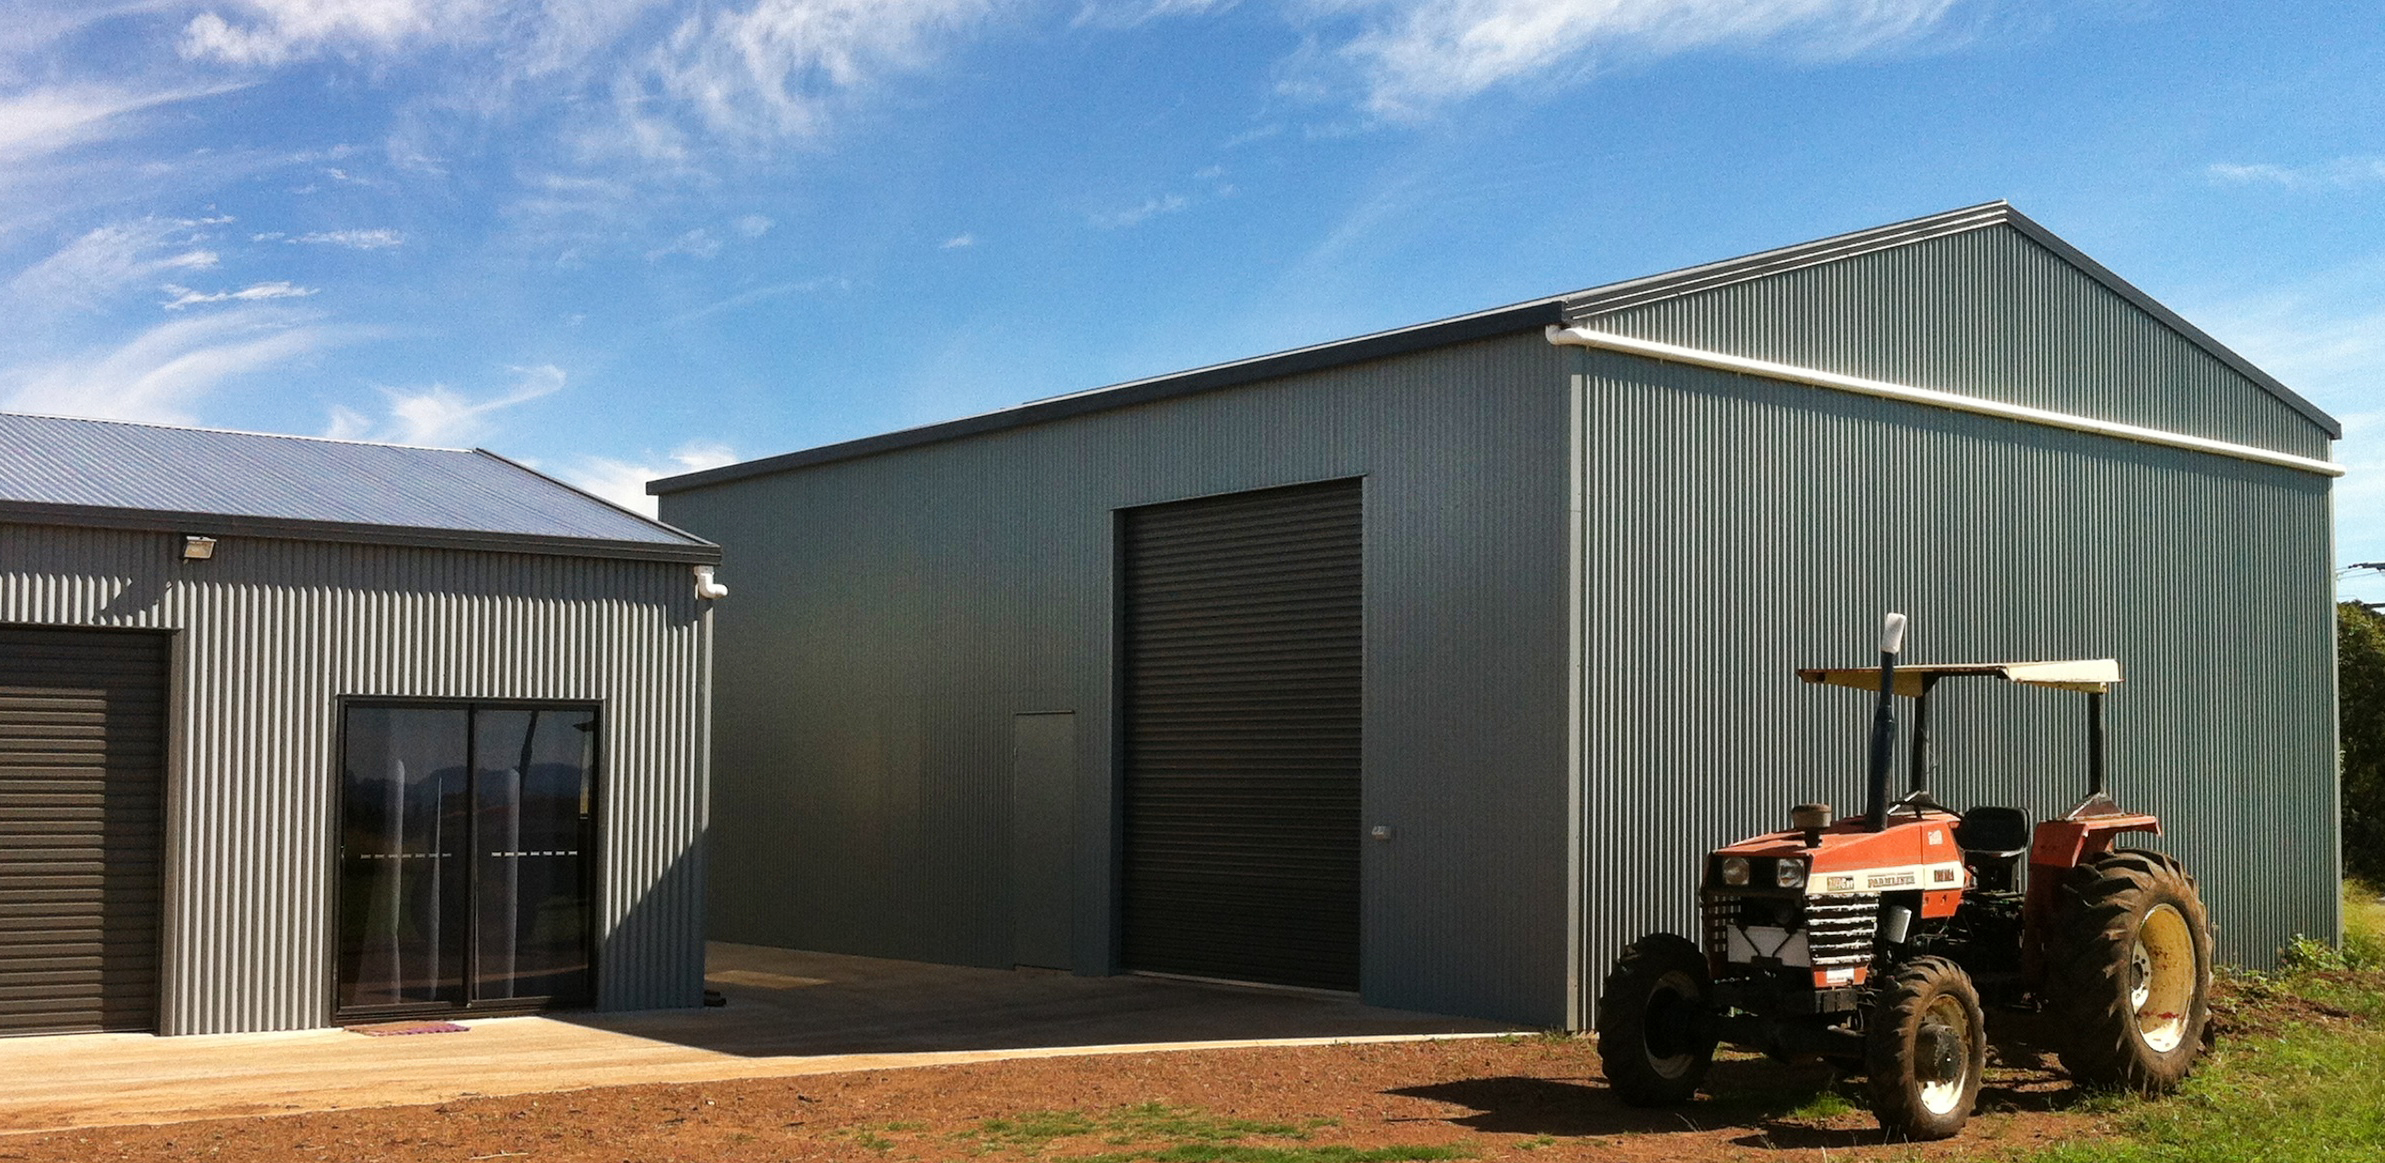 Shedzone storage sheds for brisbane agriculture and industry for Garden shed qld